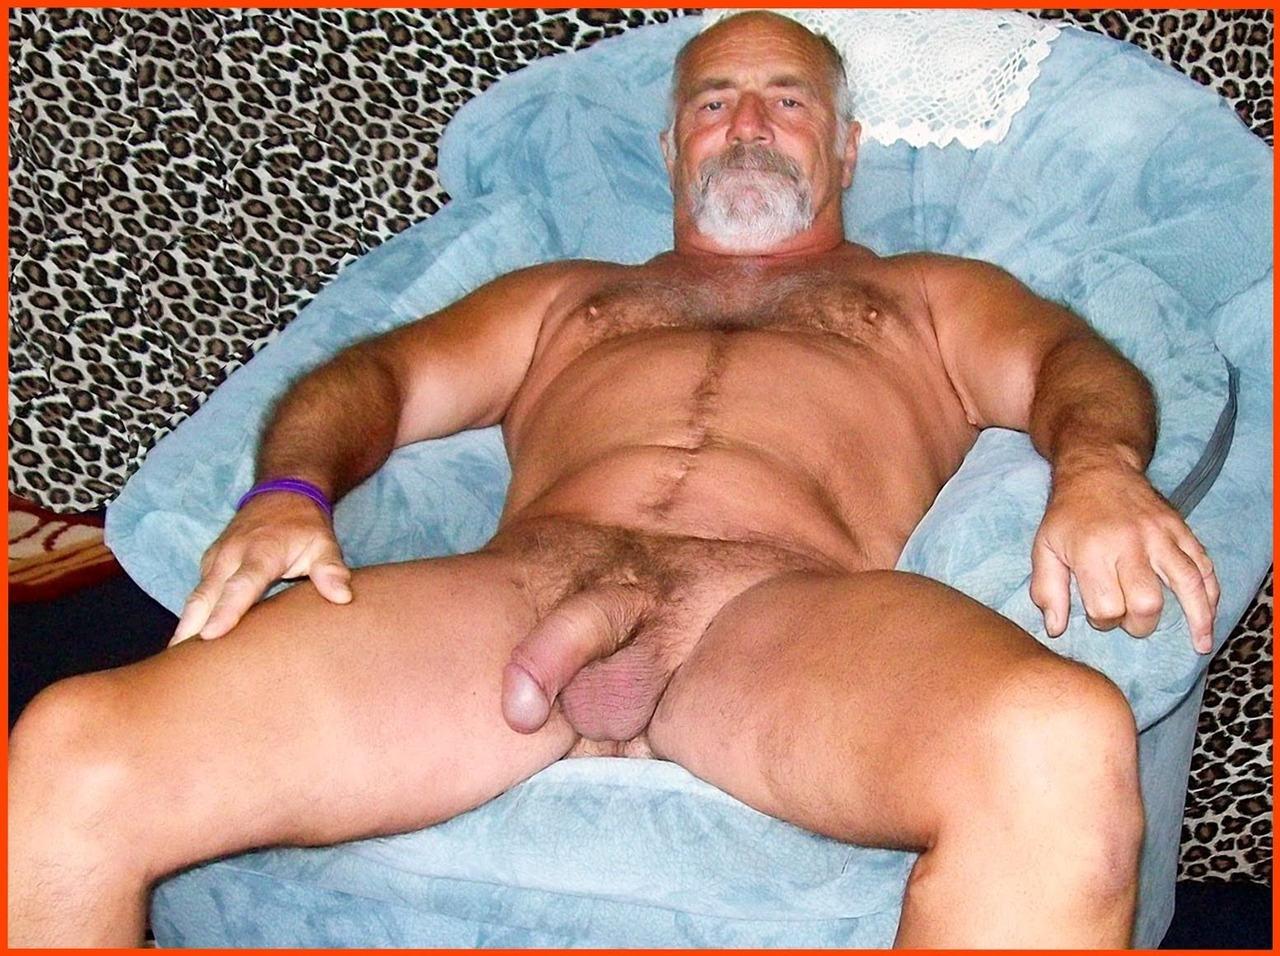 Old man erotic pics fucking images